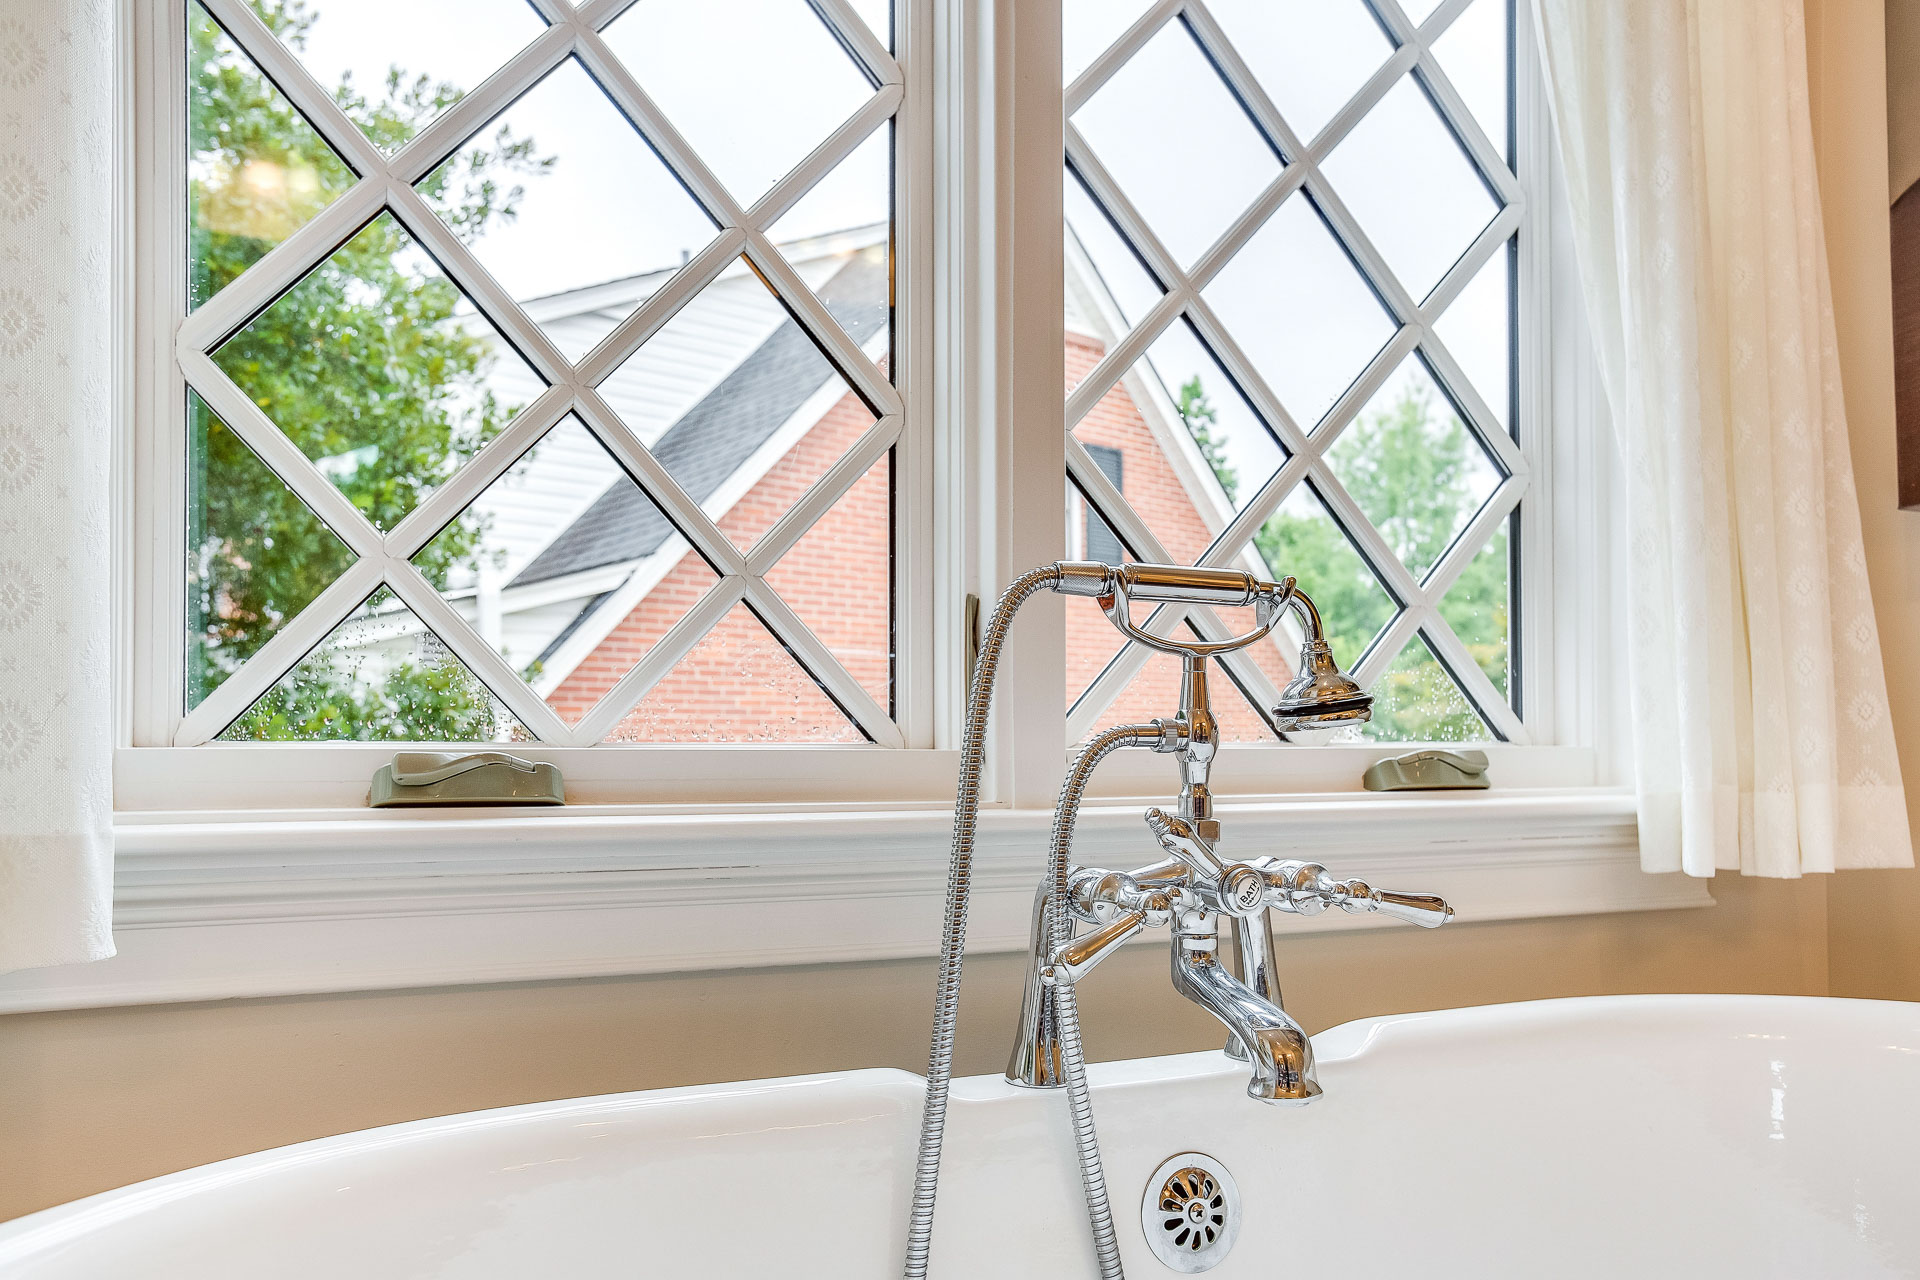 A Delta Cassidy tub filler was used for the soaking tub.